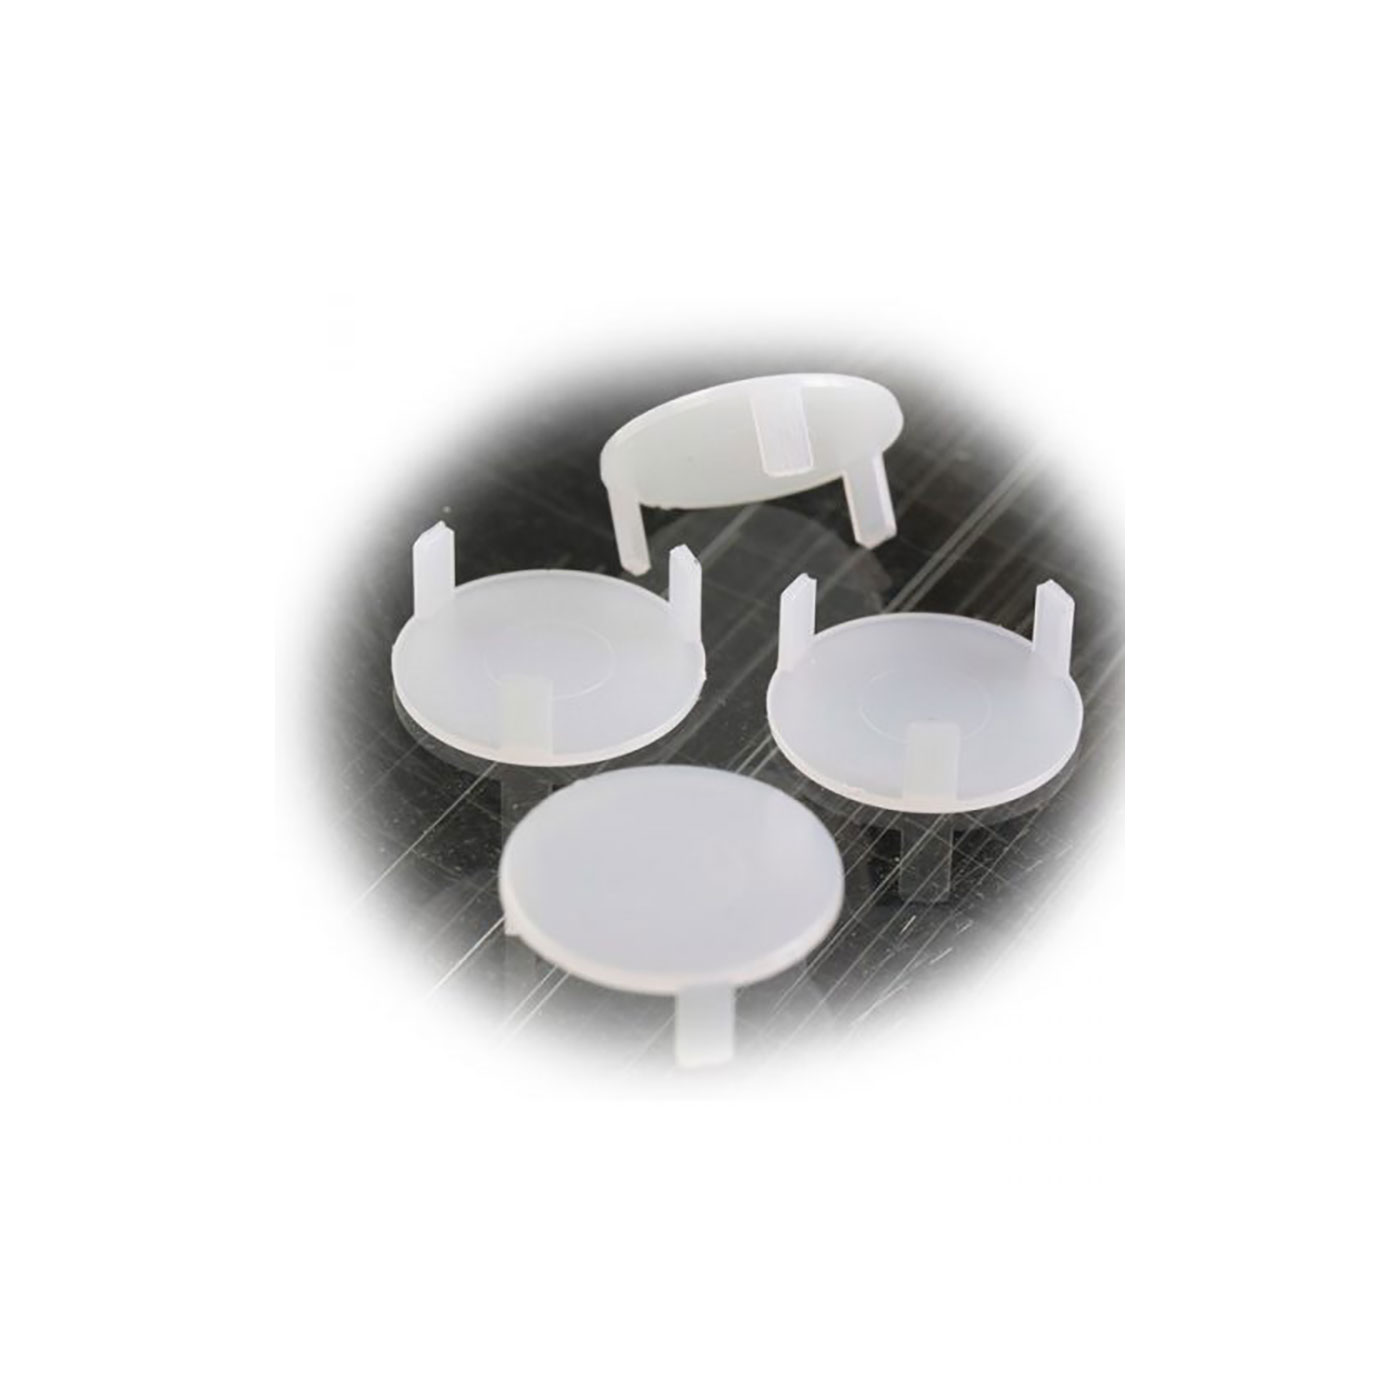 Recessed Light Diffuser Disc 4 Pack